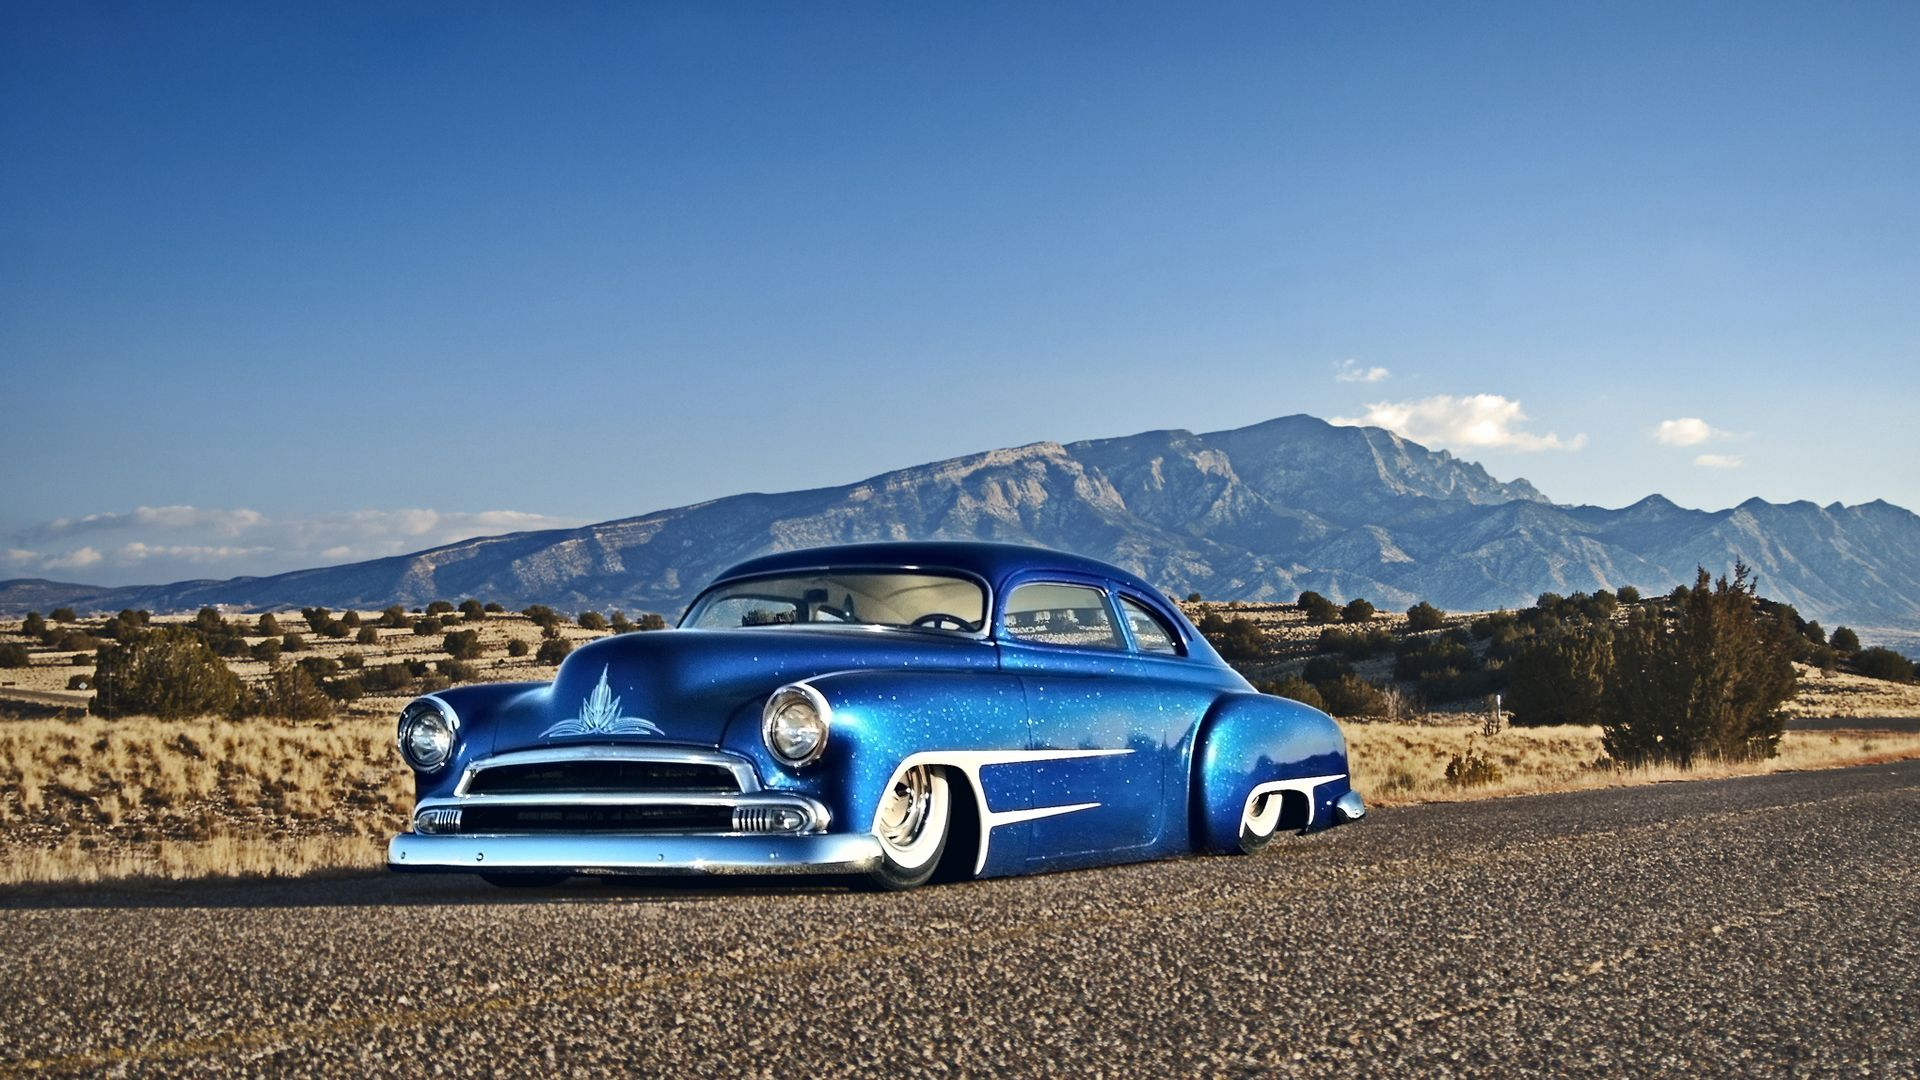 HD Wallpaper Chevy (chevrolet) classic car hot rod с посадкой